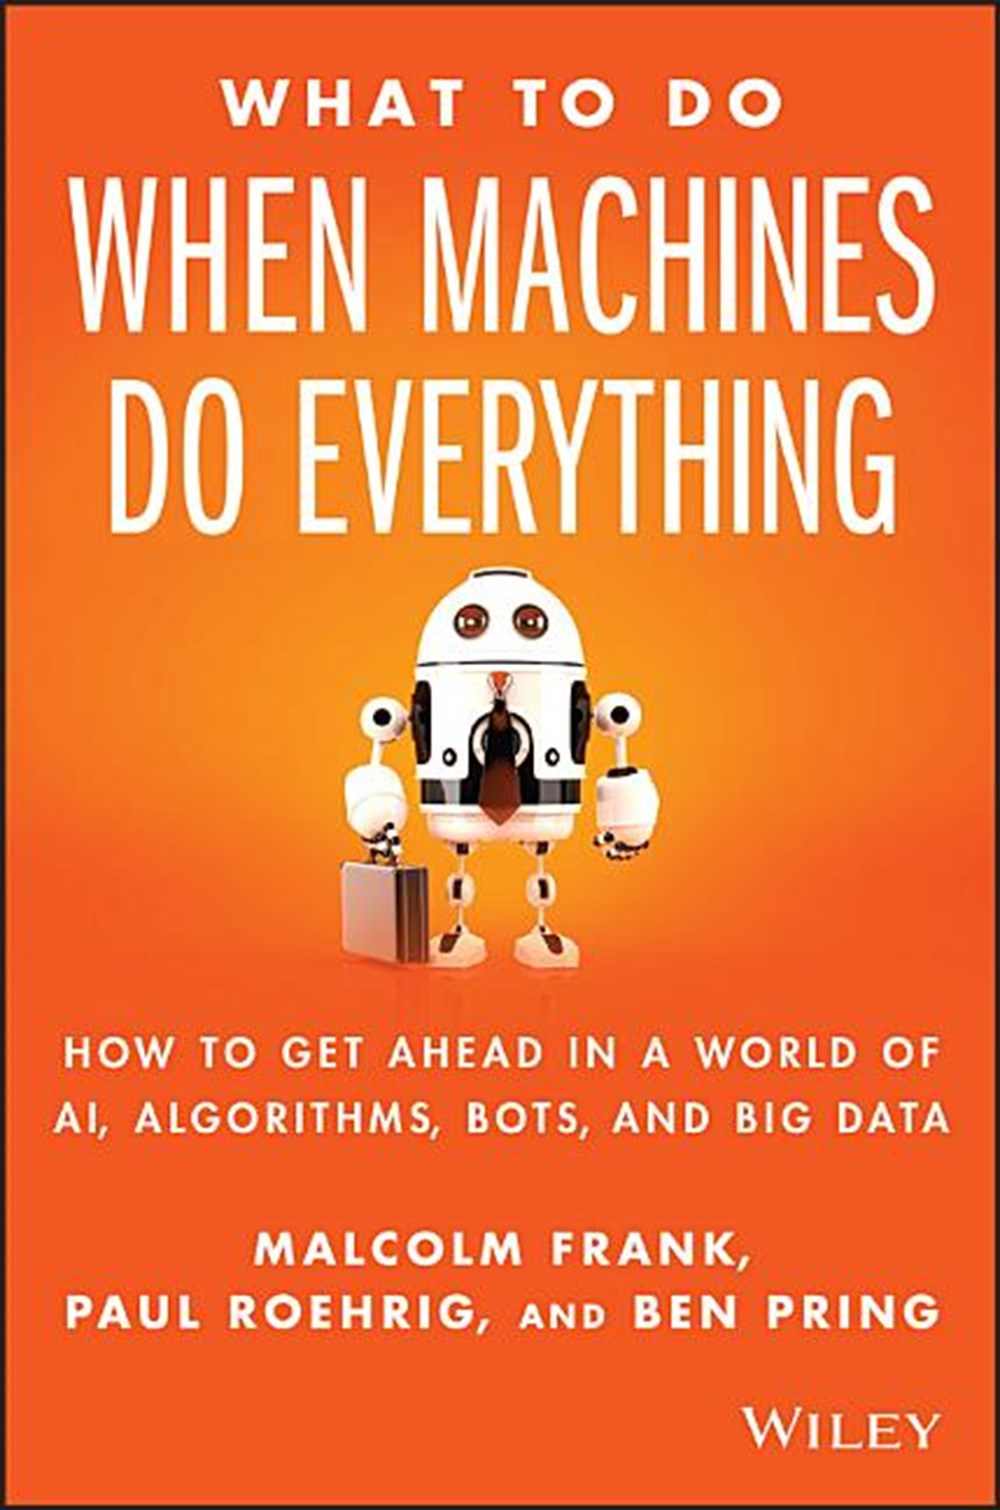 What to Do When Machines Do Everything How to Get Ahead in a World of Ai, Algorithms, Bots, and Big